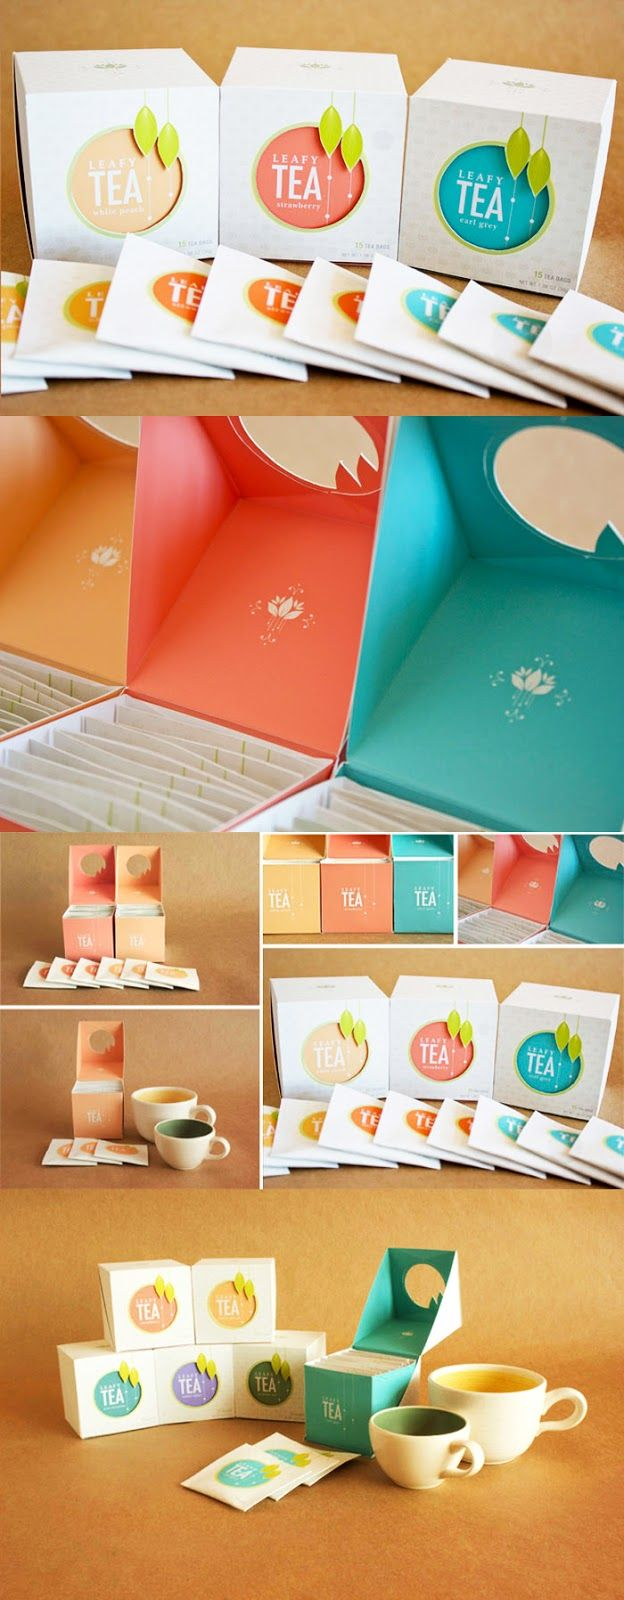 TEA PACKAGE | TEA PACKAGING DESIGN  LEAFY TEA PACKAGING DESIGNED BY Belinda Shih #teapackaging